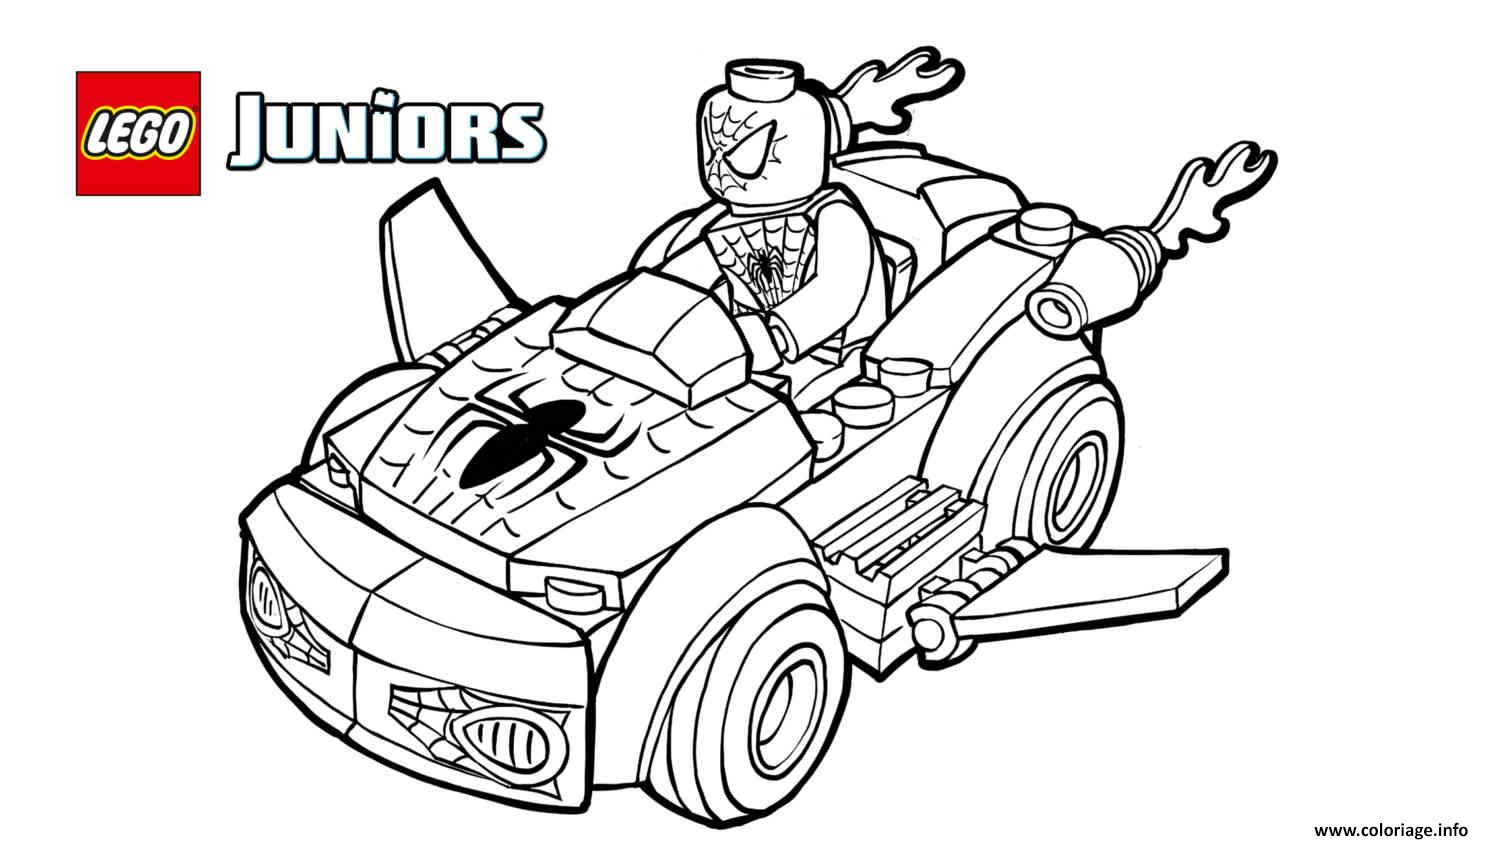 Coloriage Lego Spiderman 2 Voiture Lego Dessin